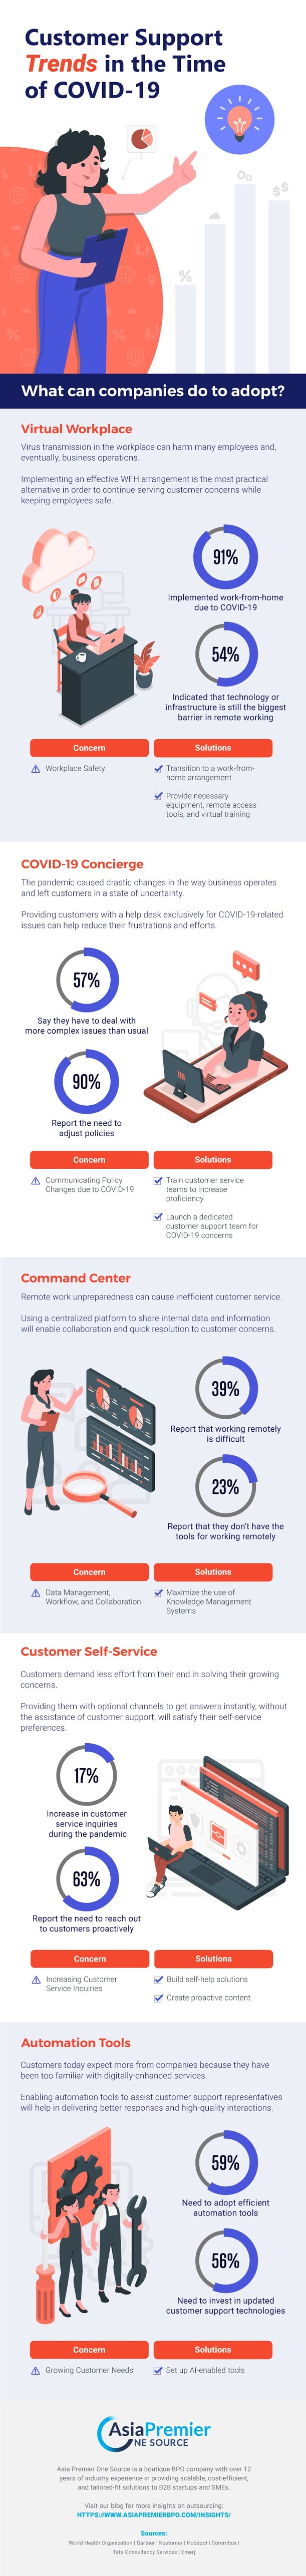 Customer Support Trends in the Time of COVID-19 #infographic #Customer Support #Covid-19 #Pandemic #Infographics #Trends #Business